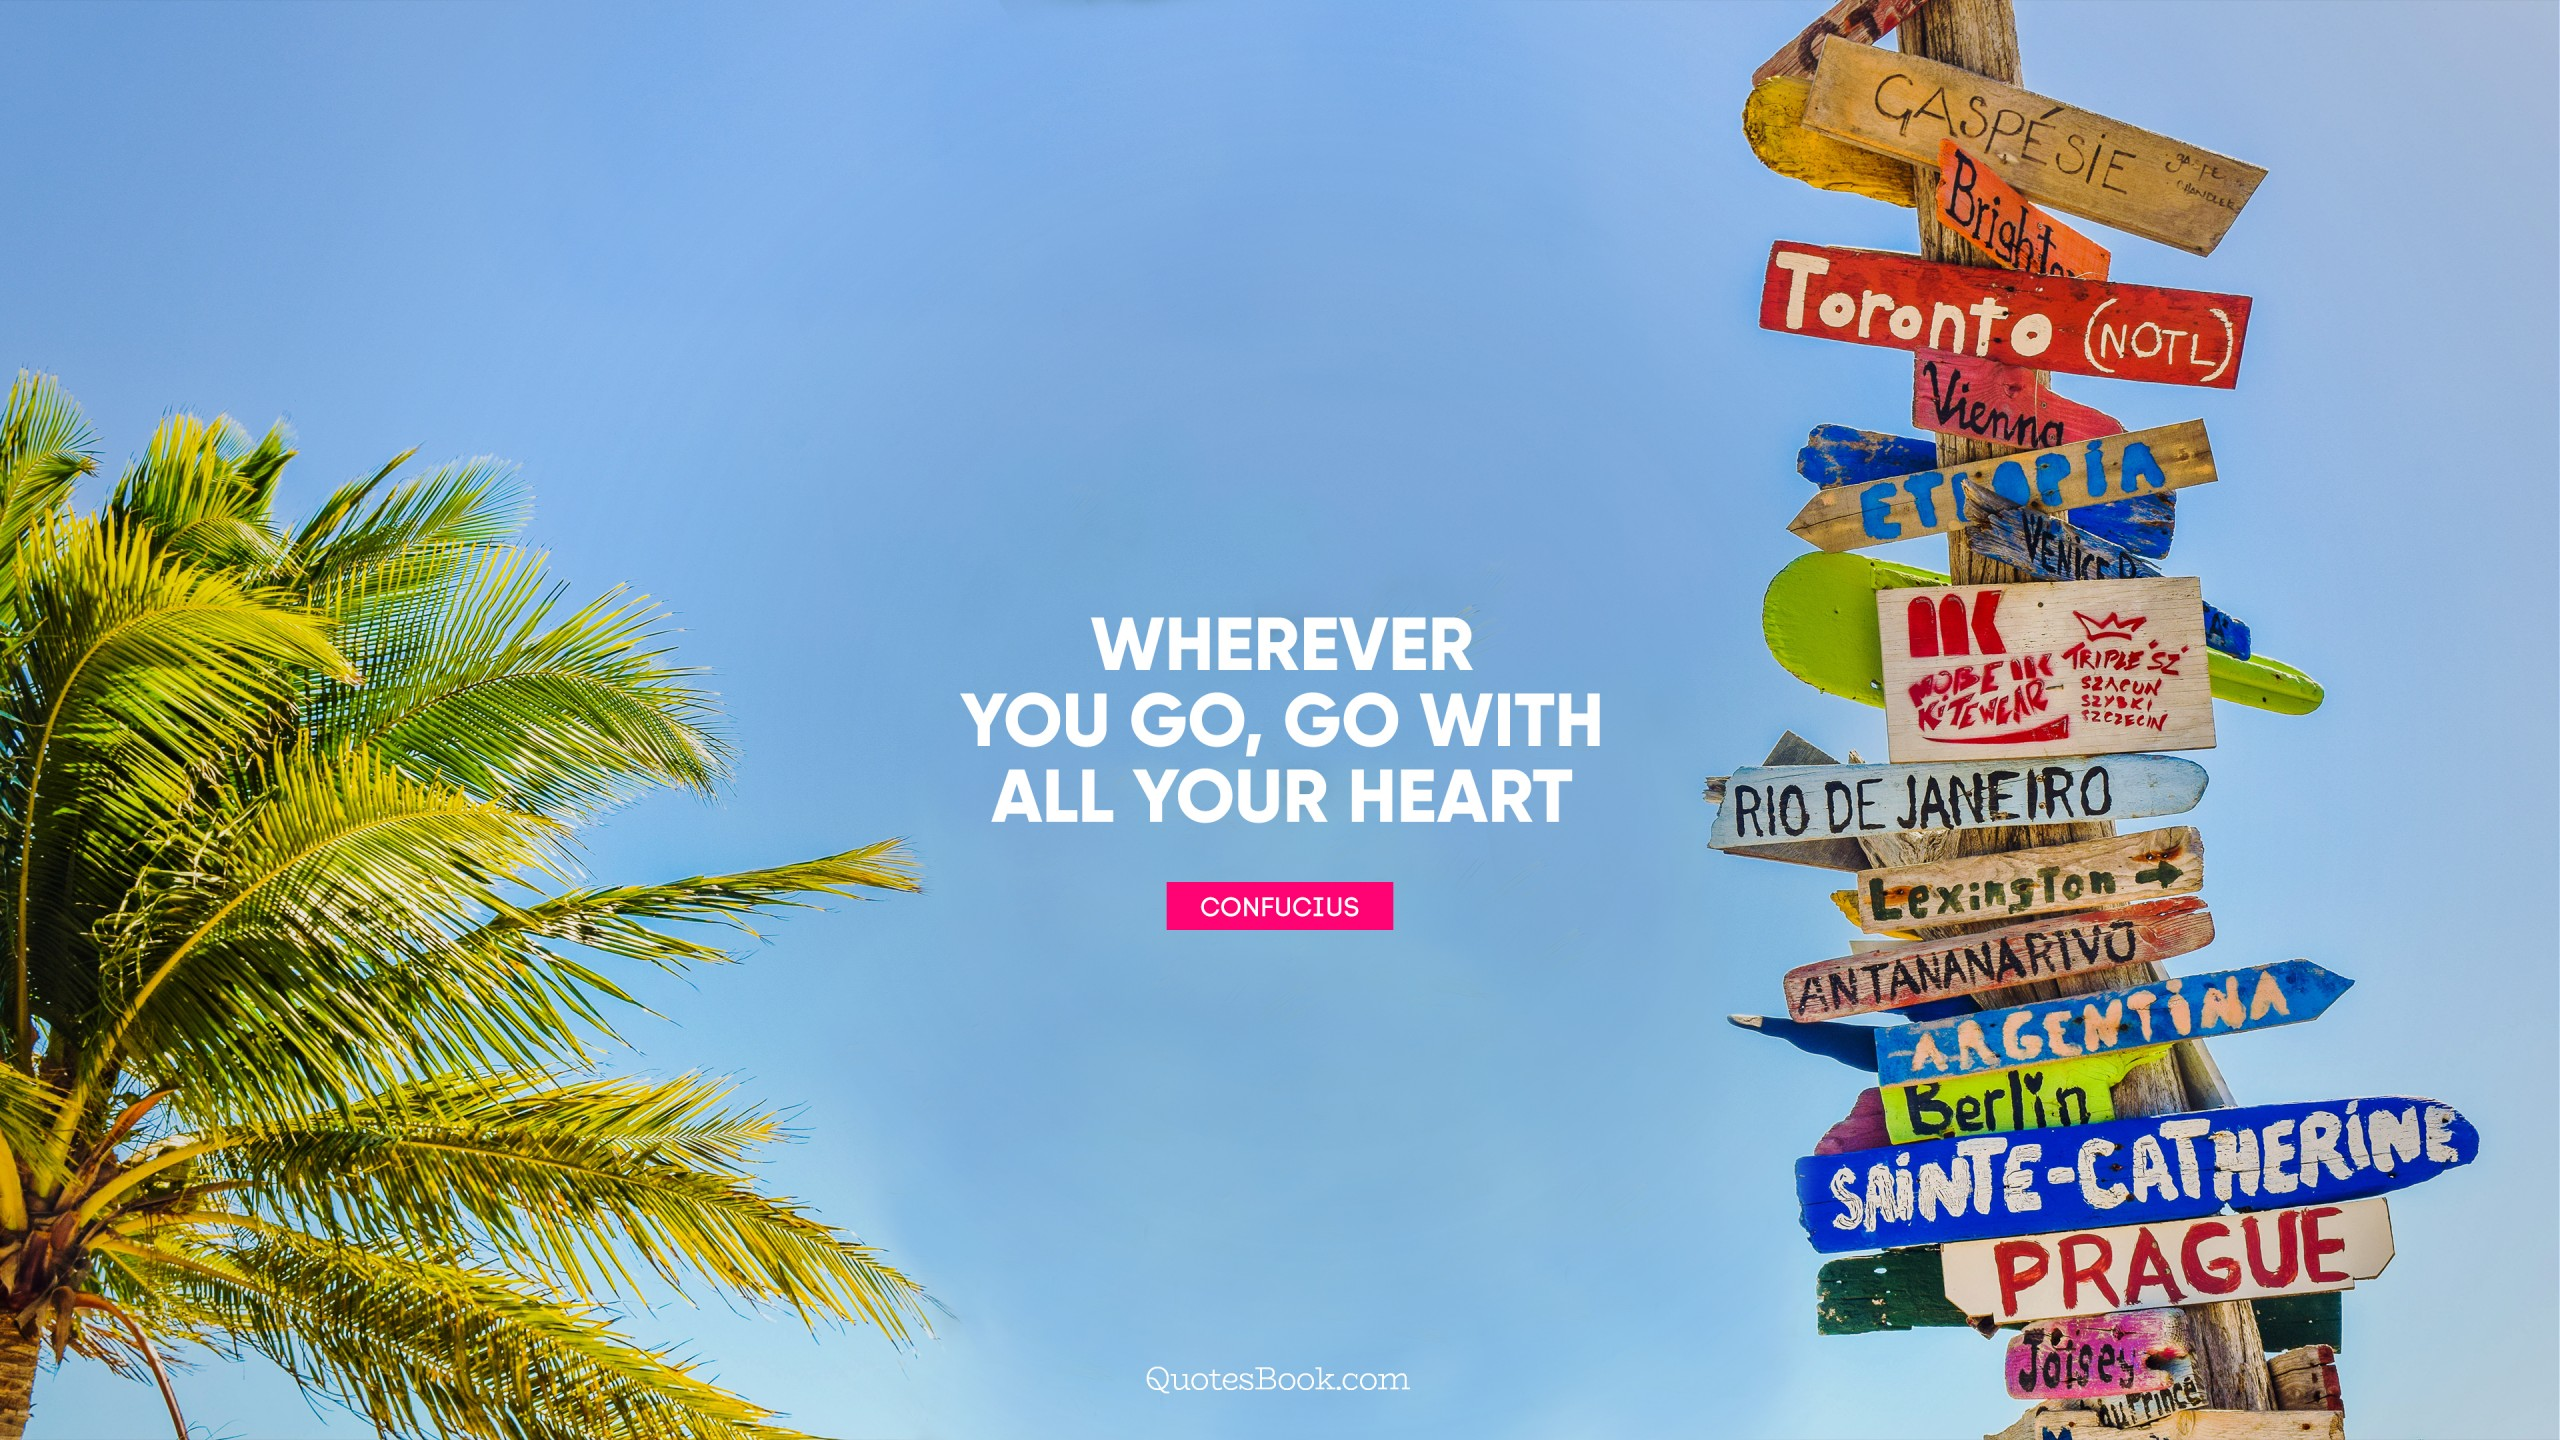 Wherever You Go Go With All Your Heart Quote By Confucius Quotesbook